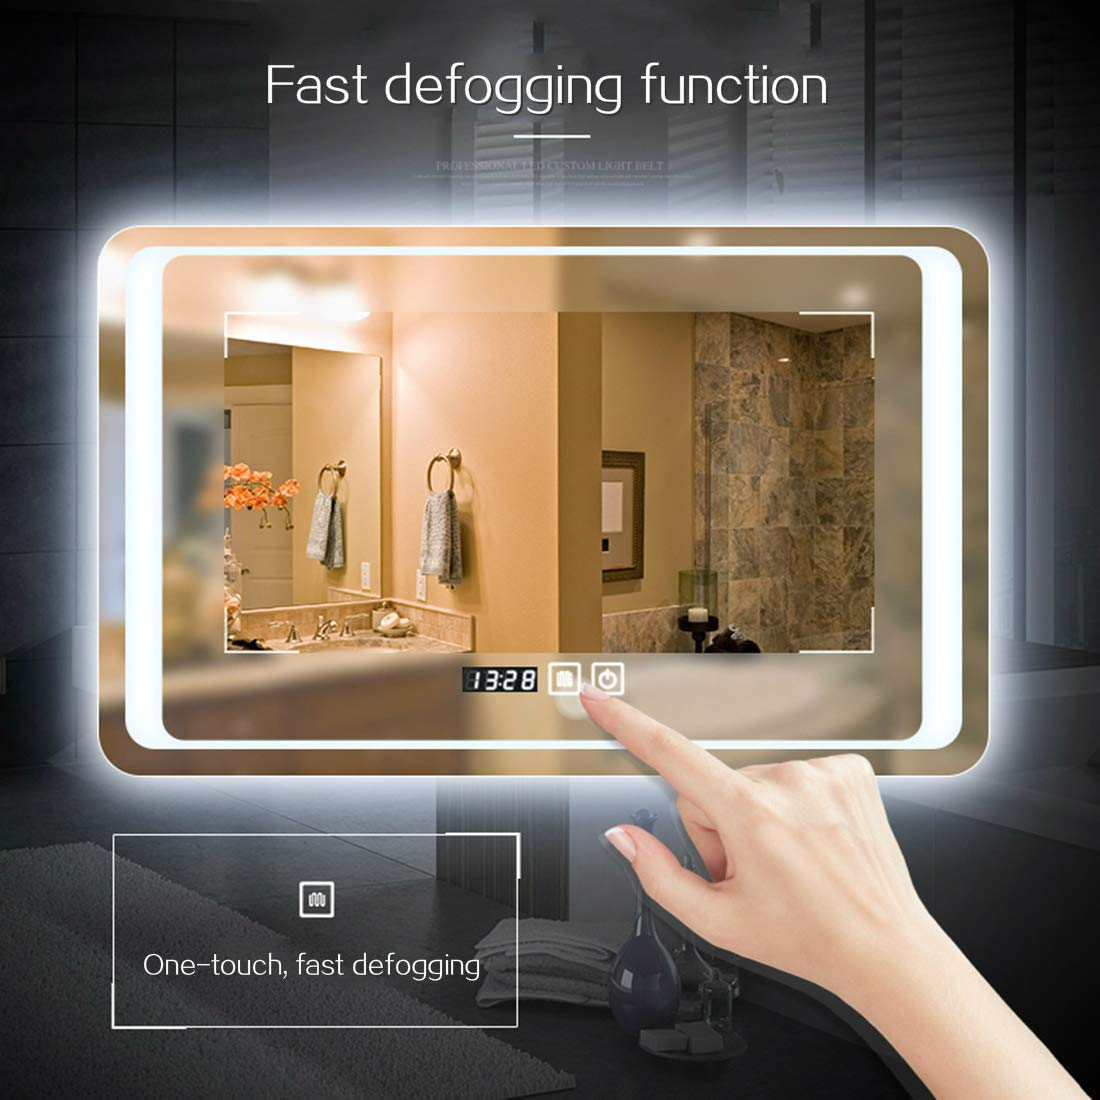 Adjustable Warm White//Daylight Lights,Safety Mirror+Touch Button+Waterproof 20x28inch Halo kunyue LED Bathroom Wall Mounted Makeup Mirror LED Smart Mirror,Rectangle Mirror